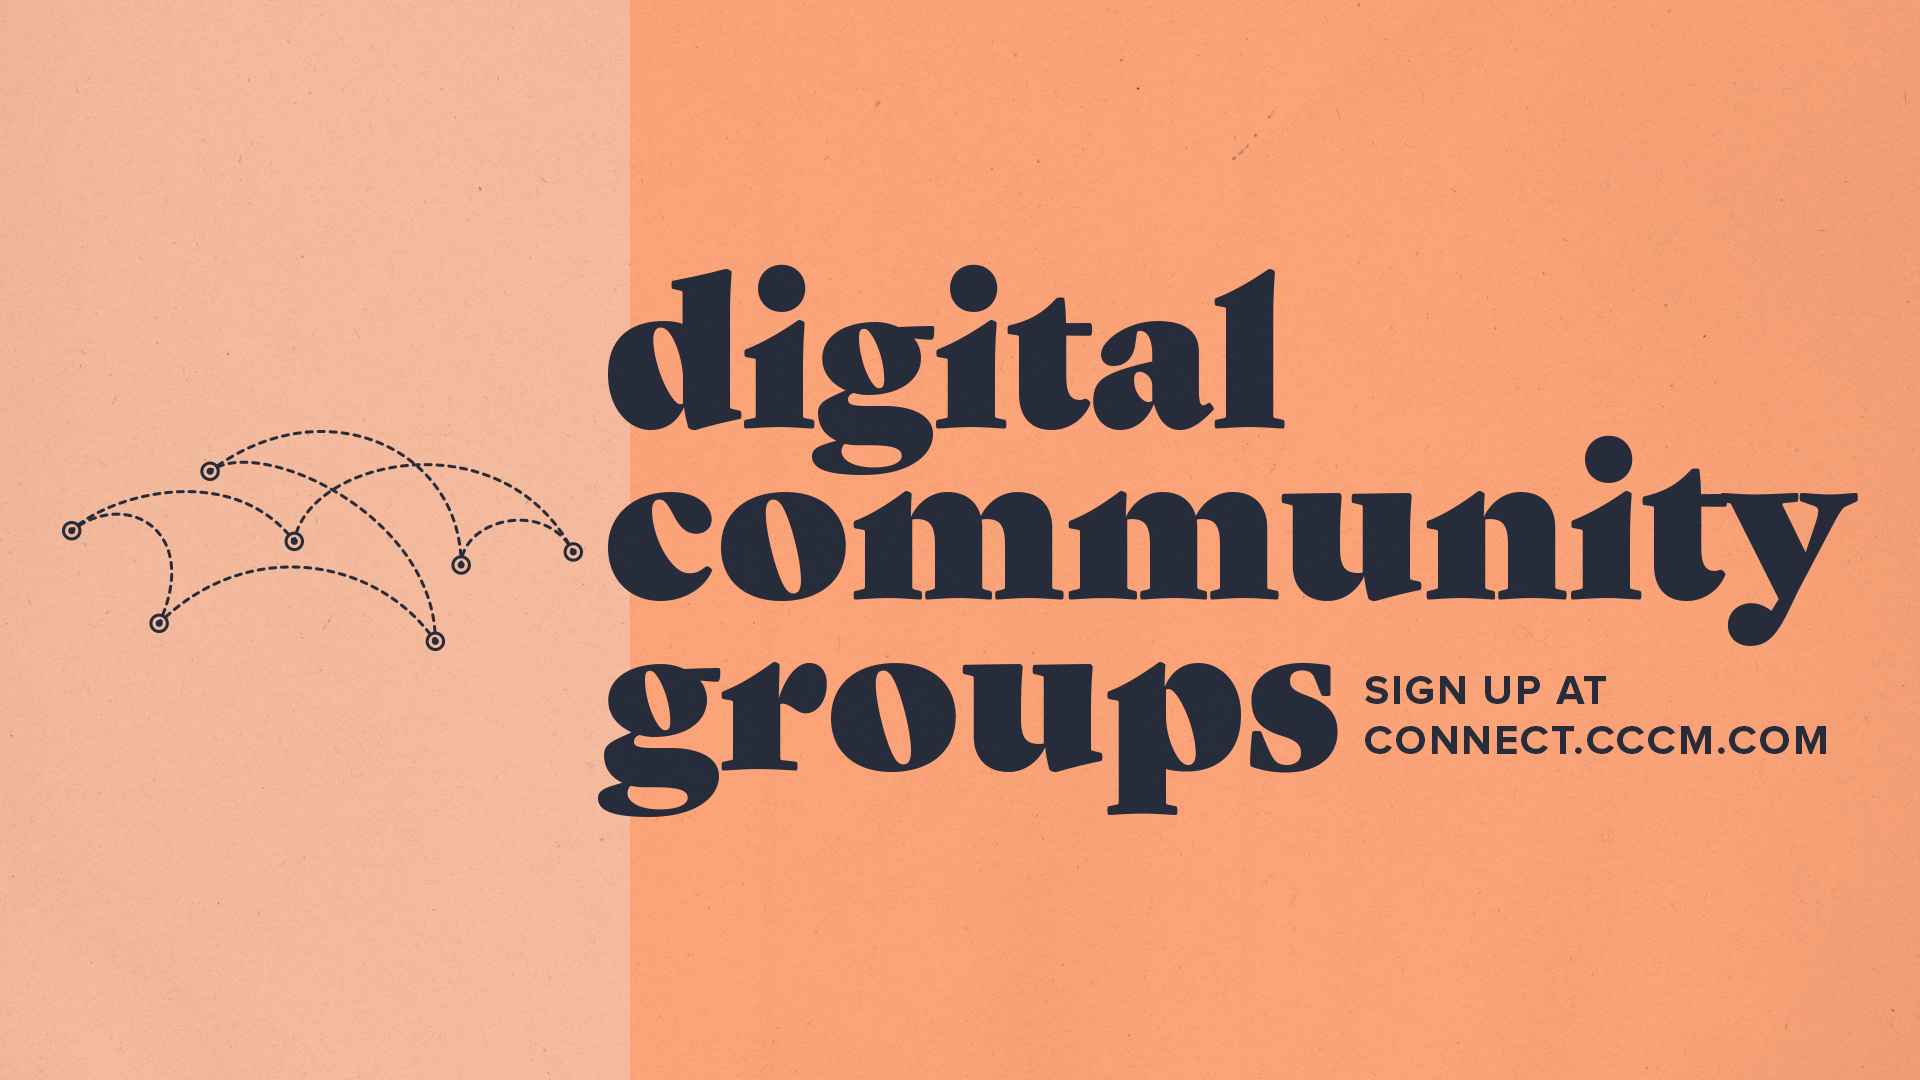 DigitalCommunityGroups 1920x1080